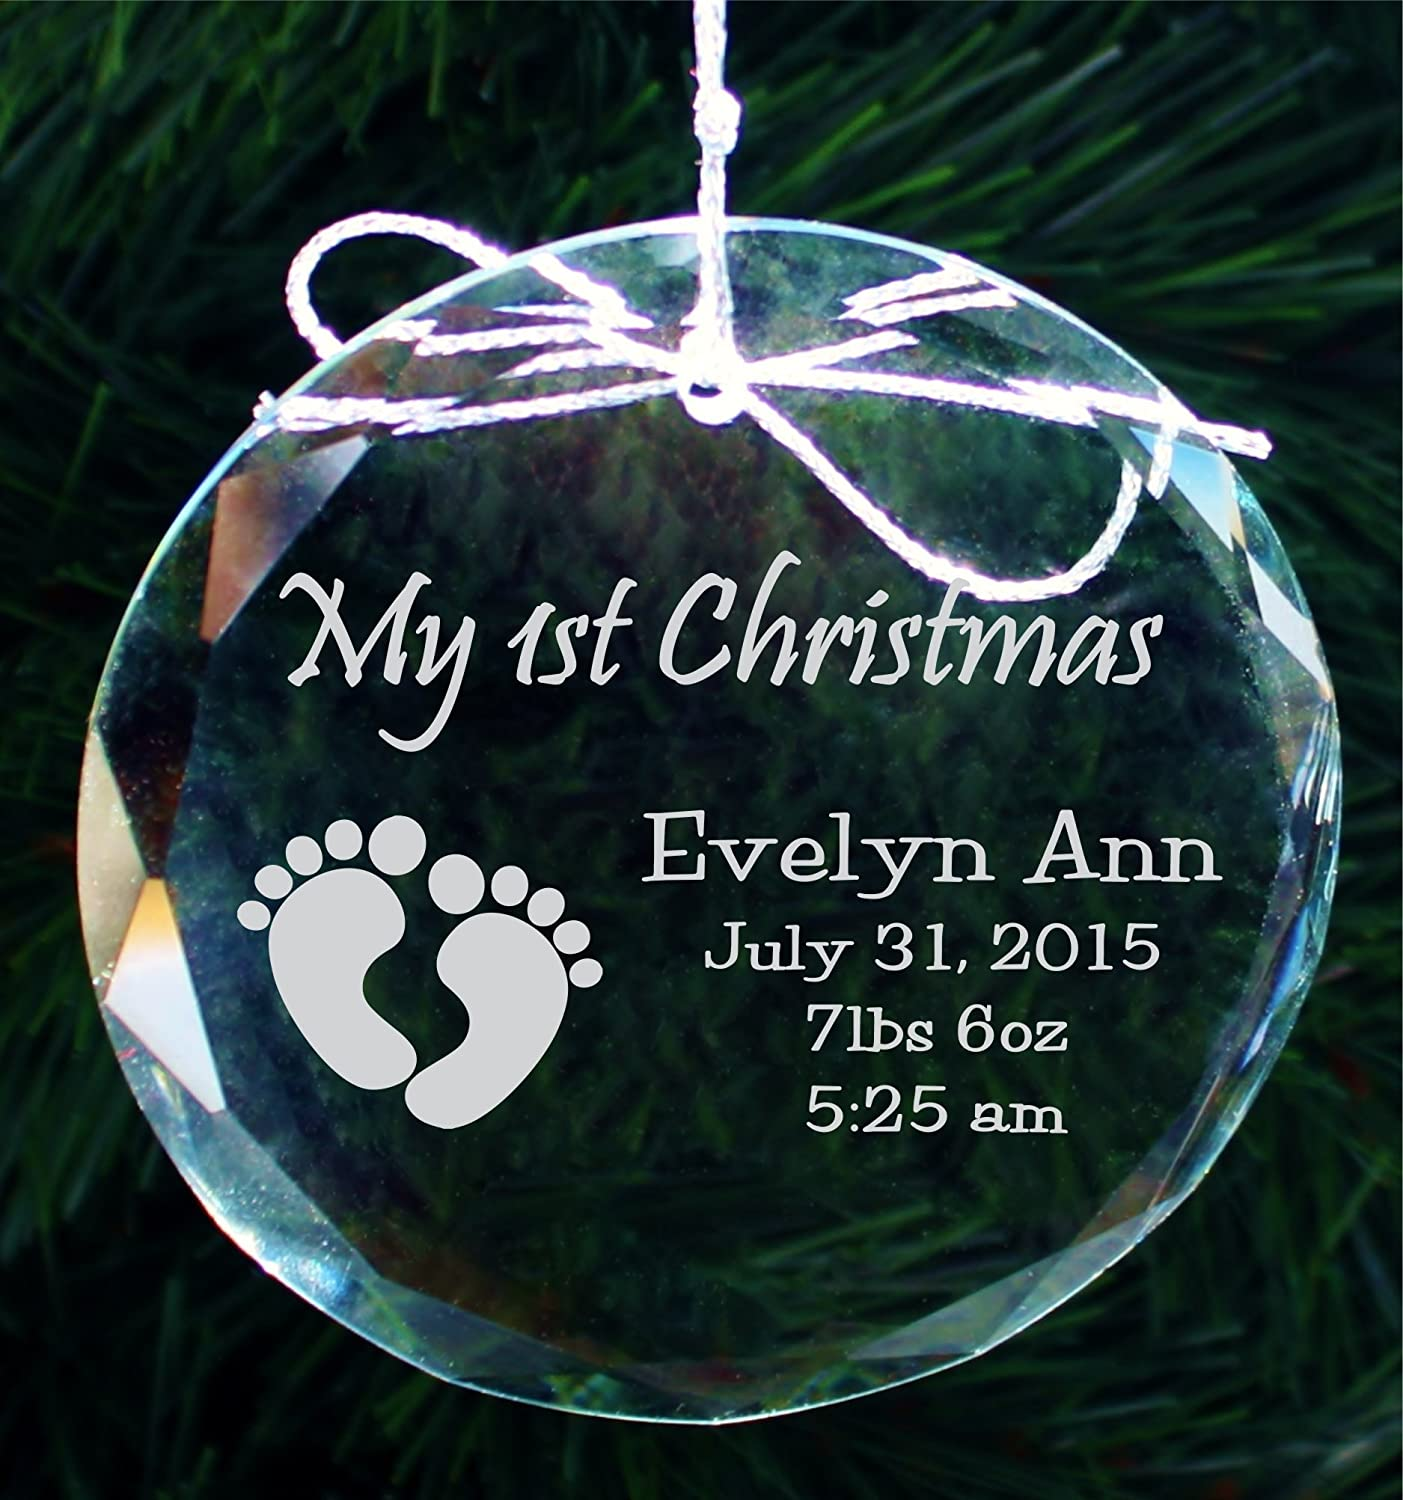 Amazoncom Babys First Christmas Ornament, Handmade Crystal Holiday Ornaments